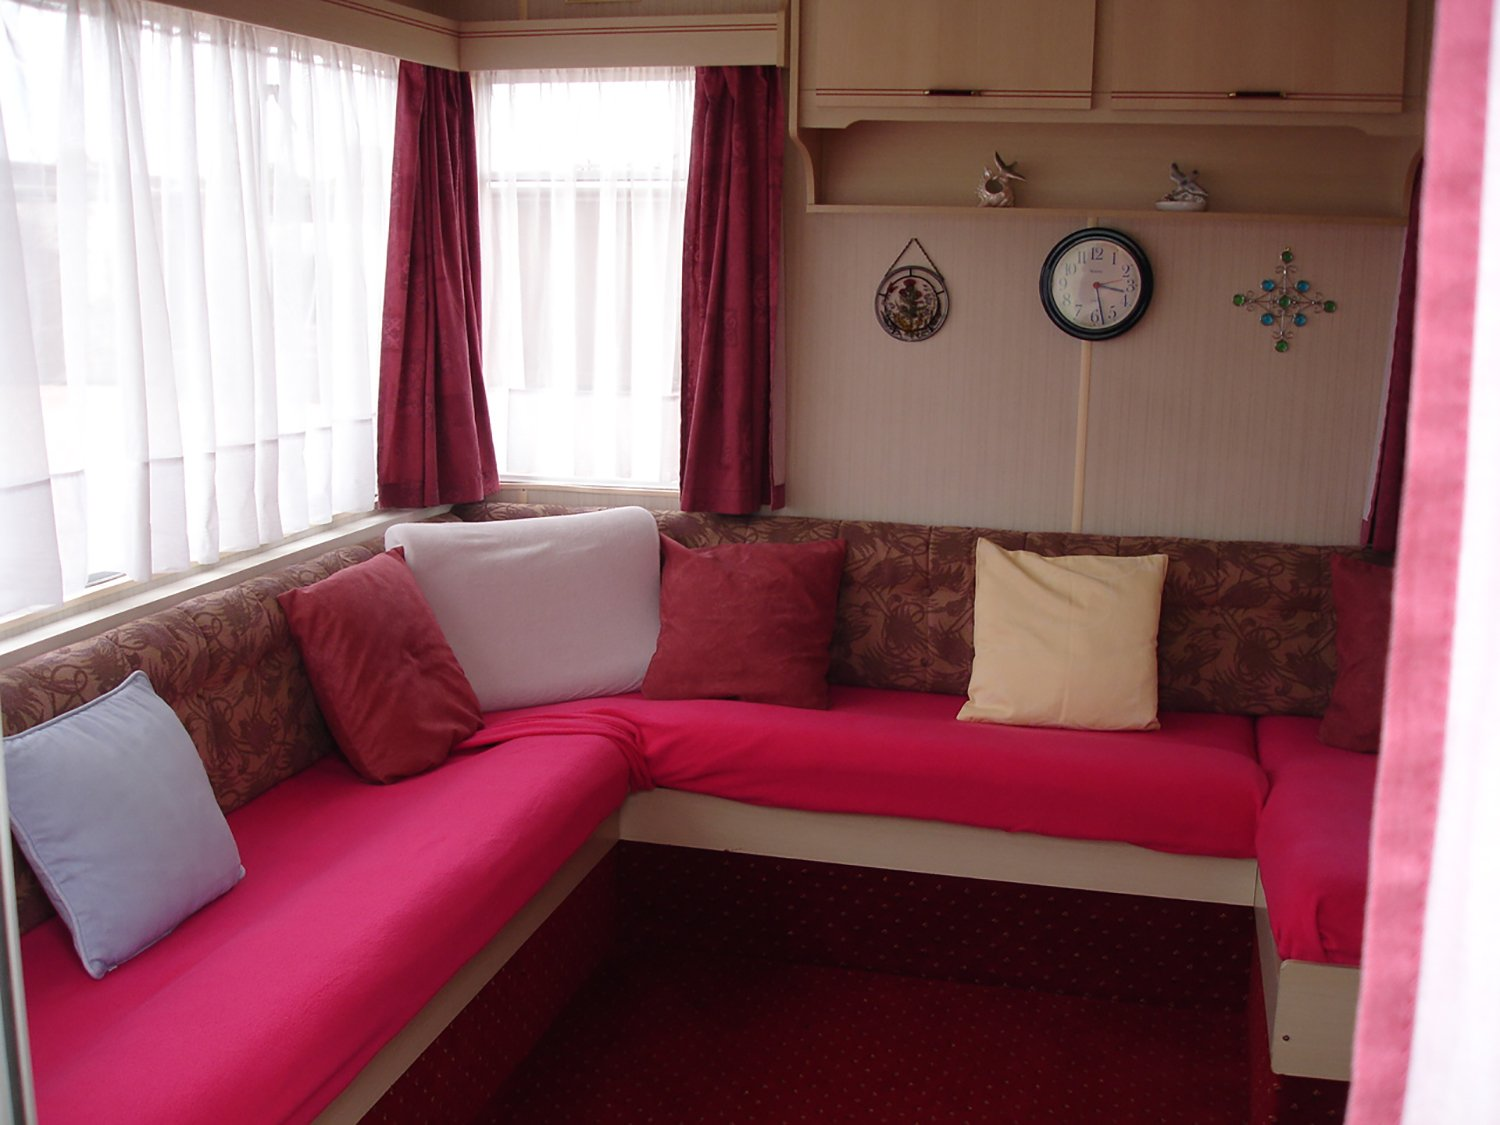 room with a red sofa with pillows